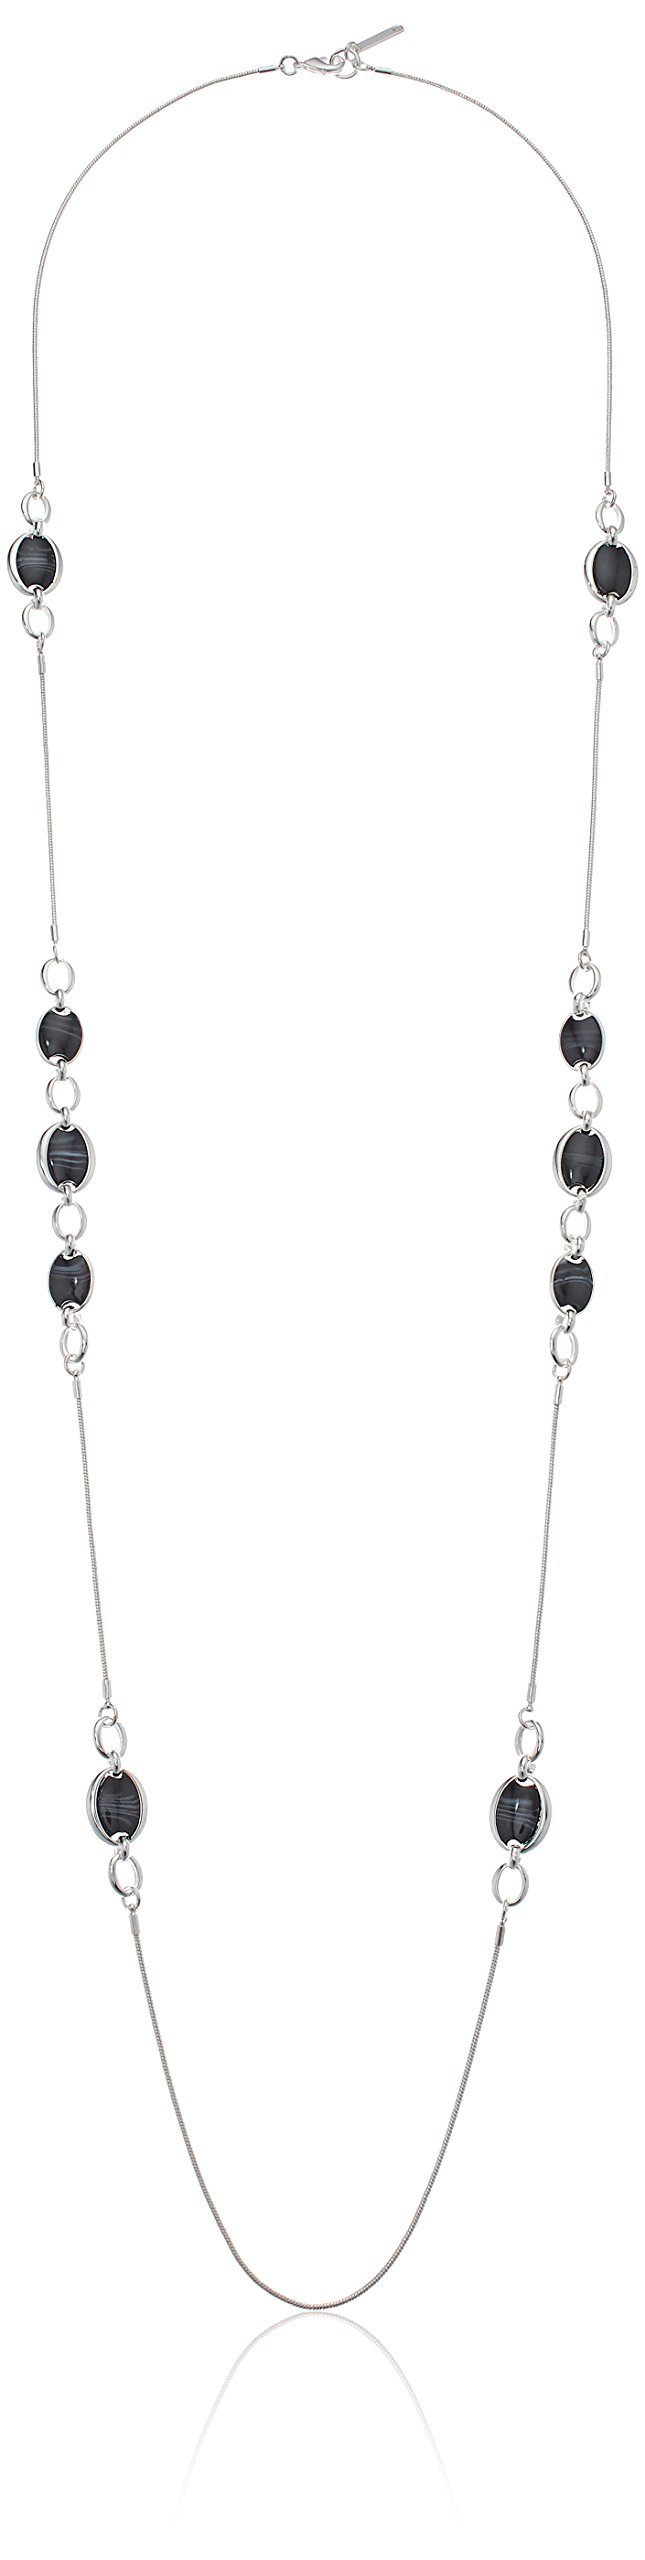 Nine West Women's Silver-Tone and Jet 42'' Strand Necklace, Size 0